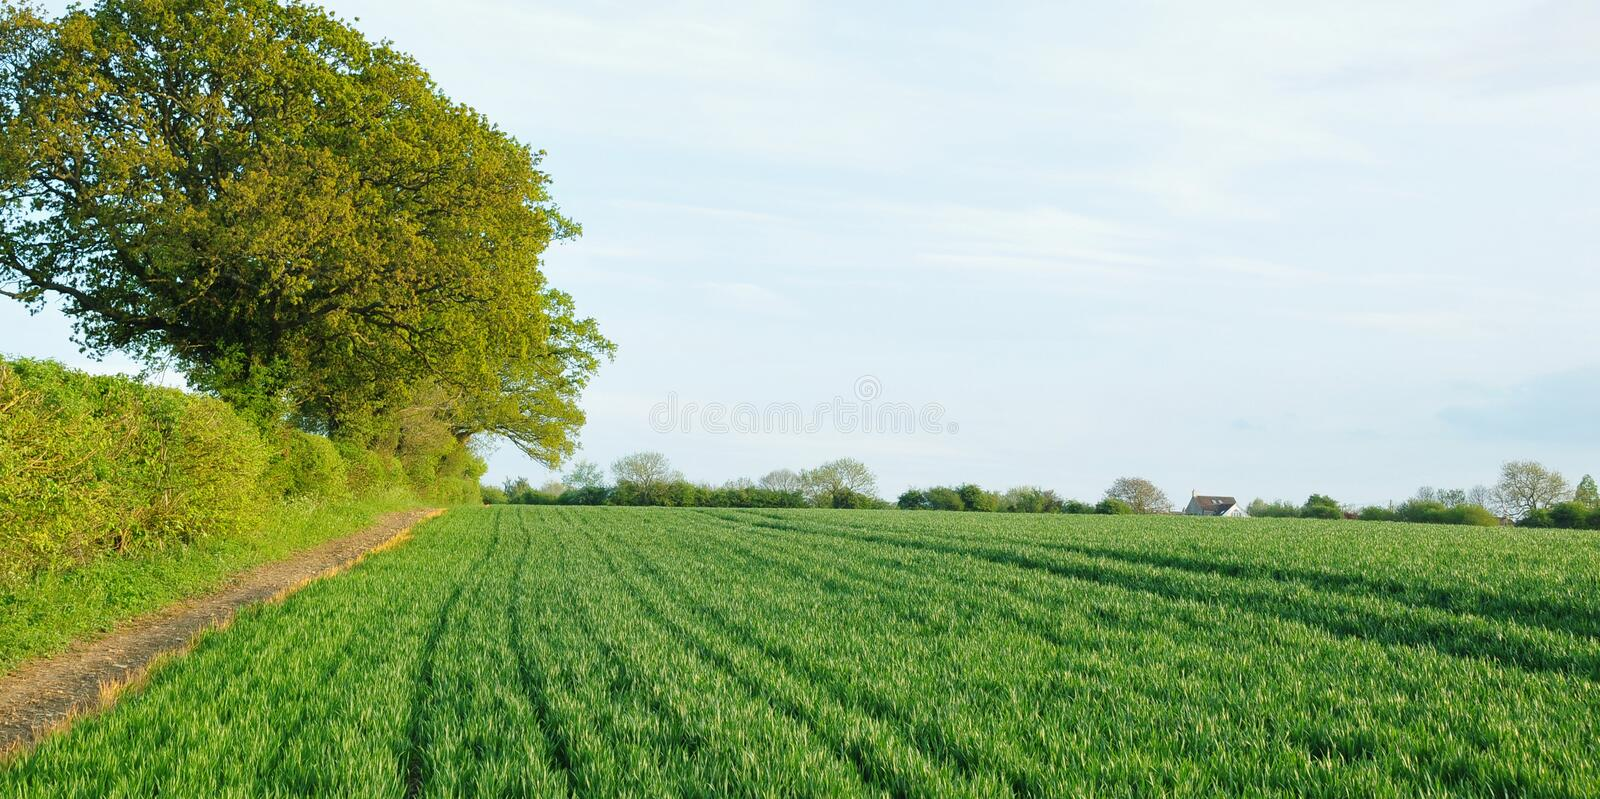 Download Landscape View Of Crops On Farmland Stock Image - Image: 20403121